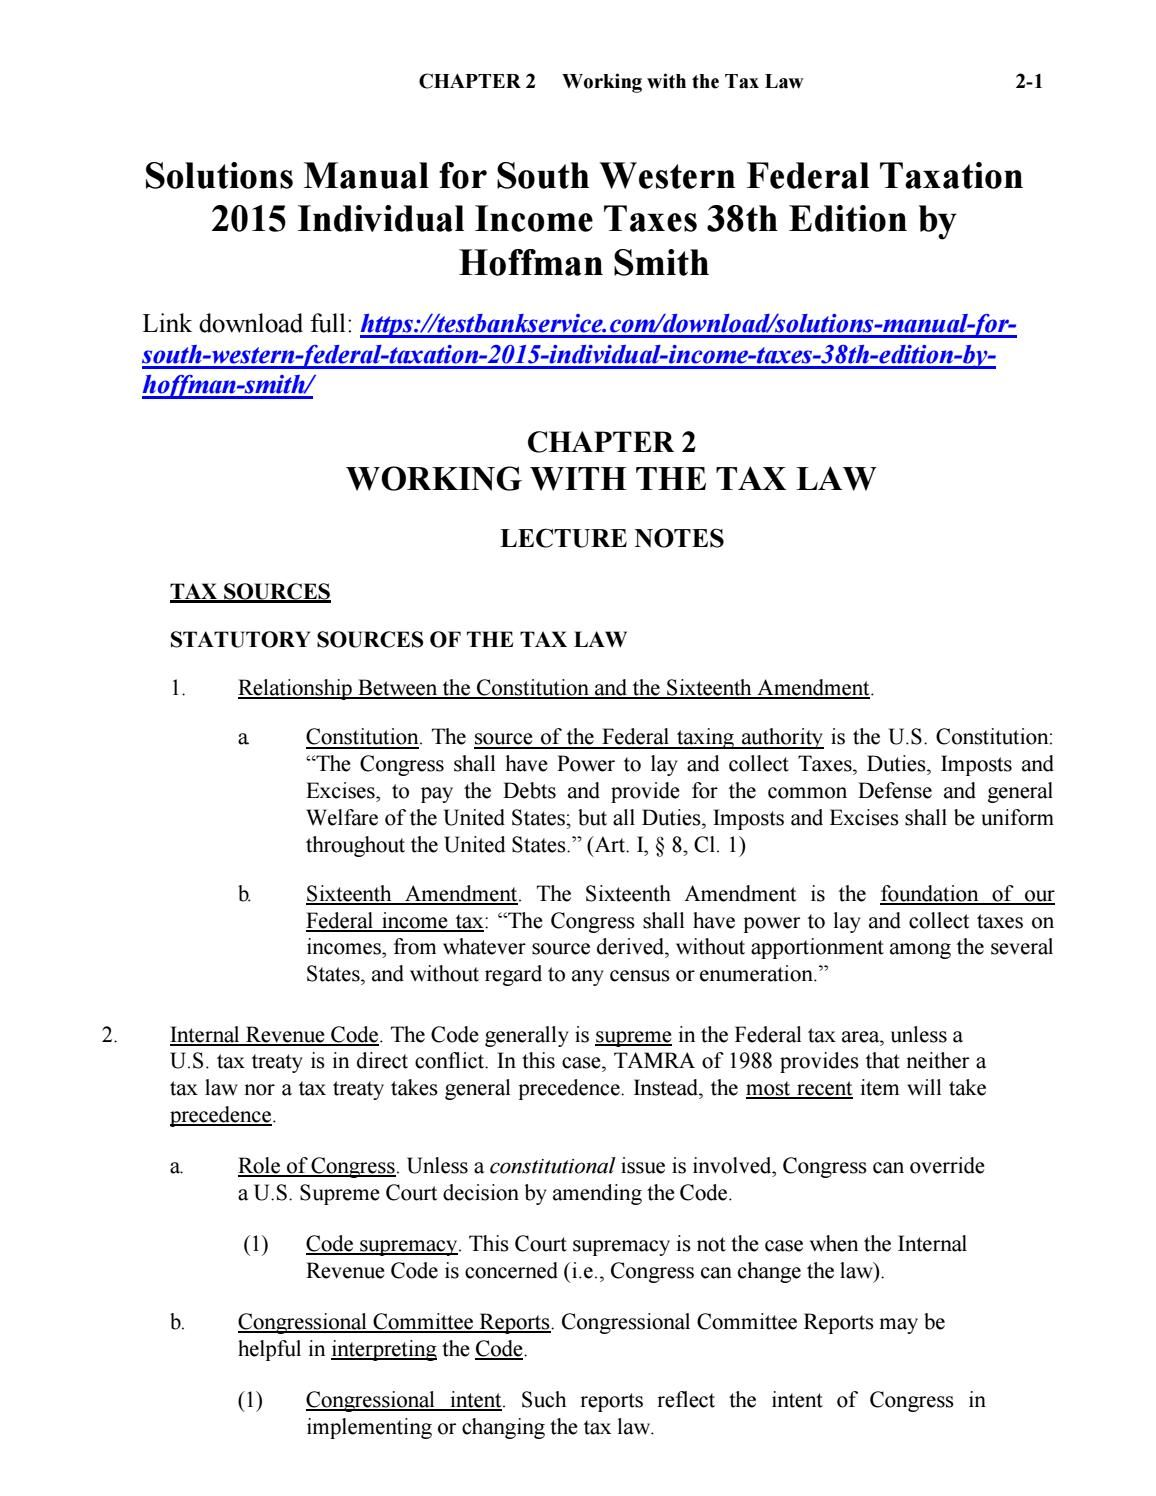 Solutions manual for south western federal taxation 2015 individual income  taxes 38th edition by hof